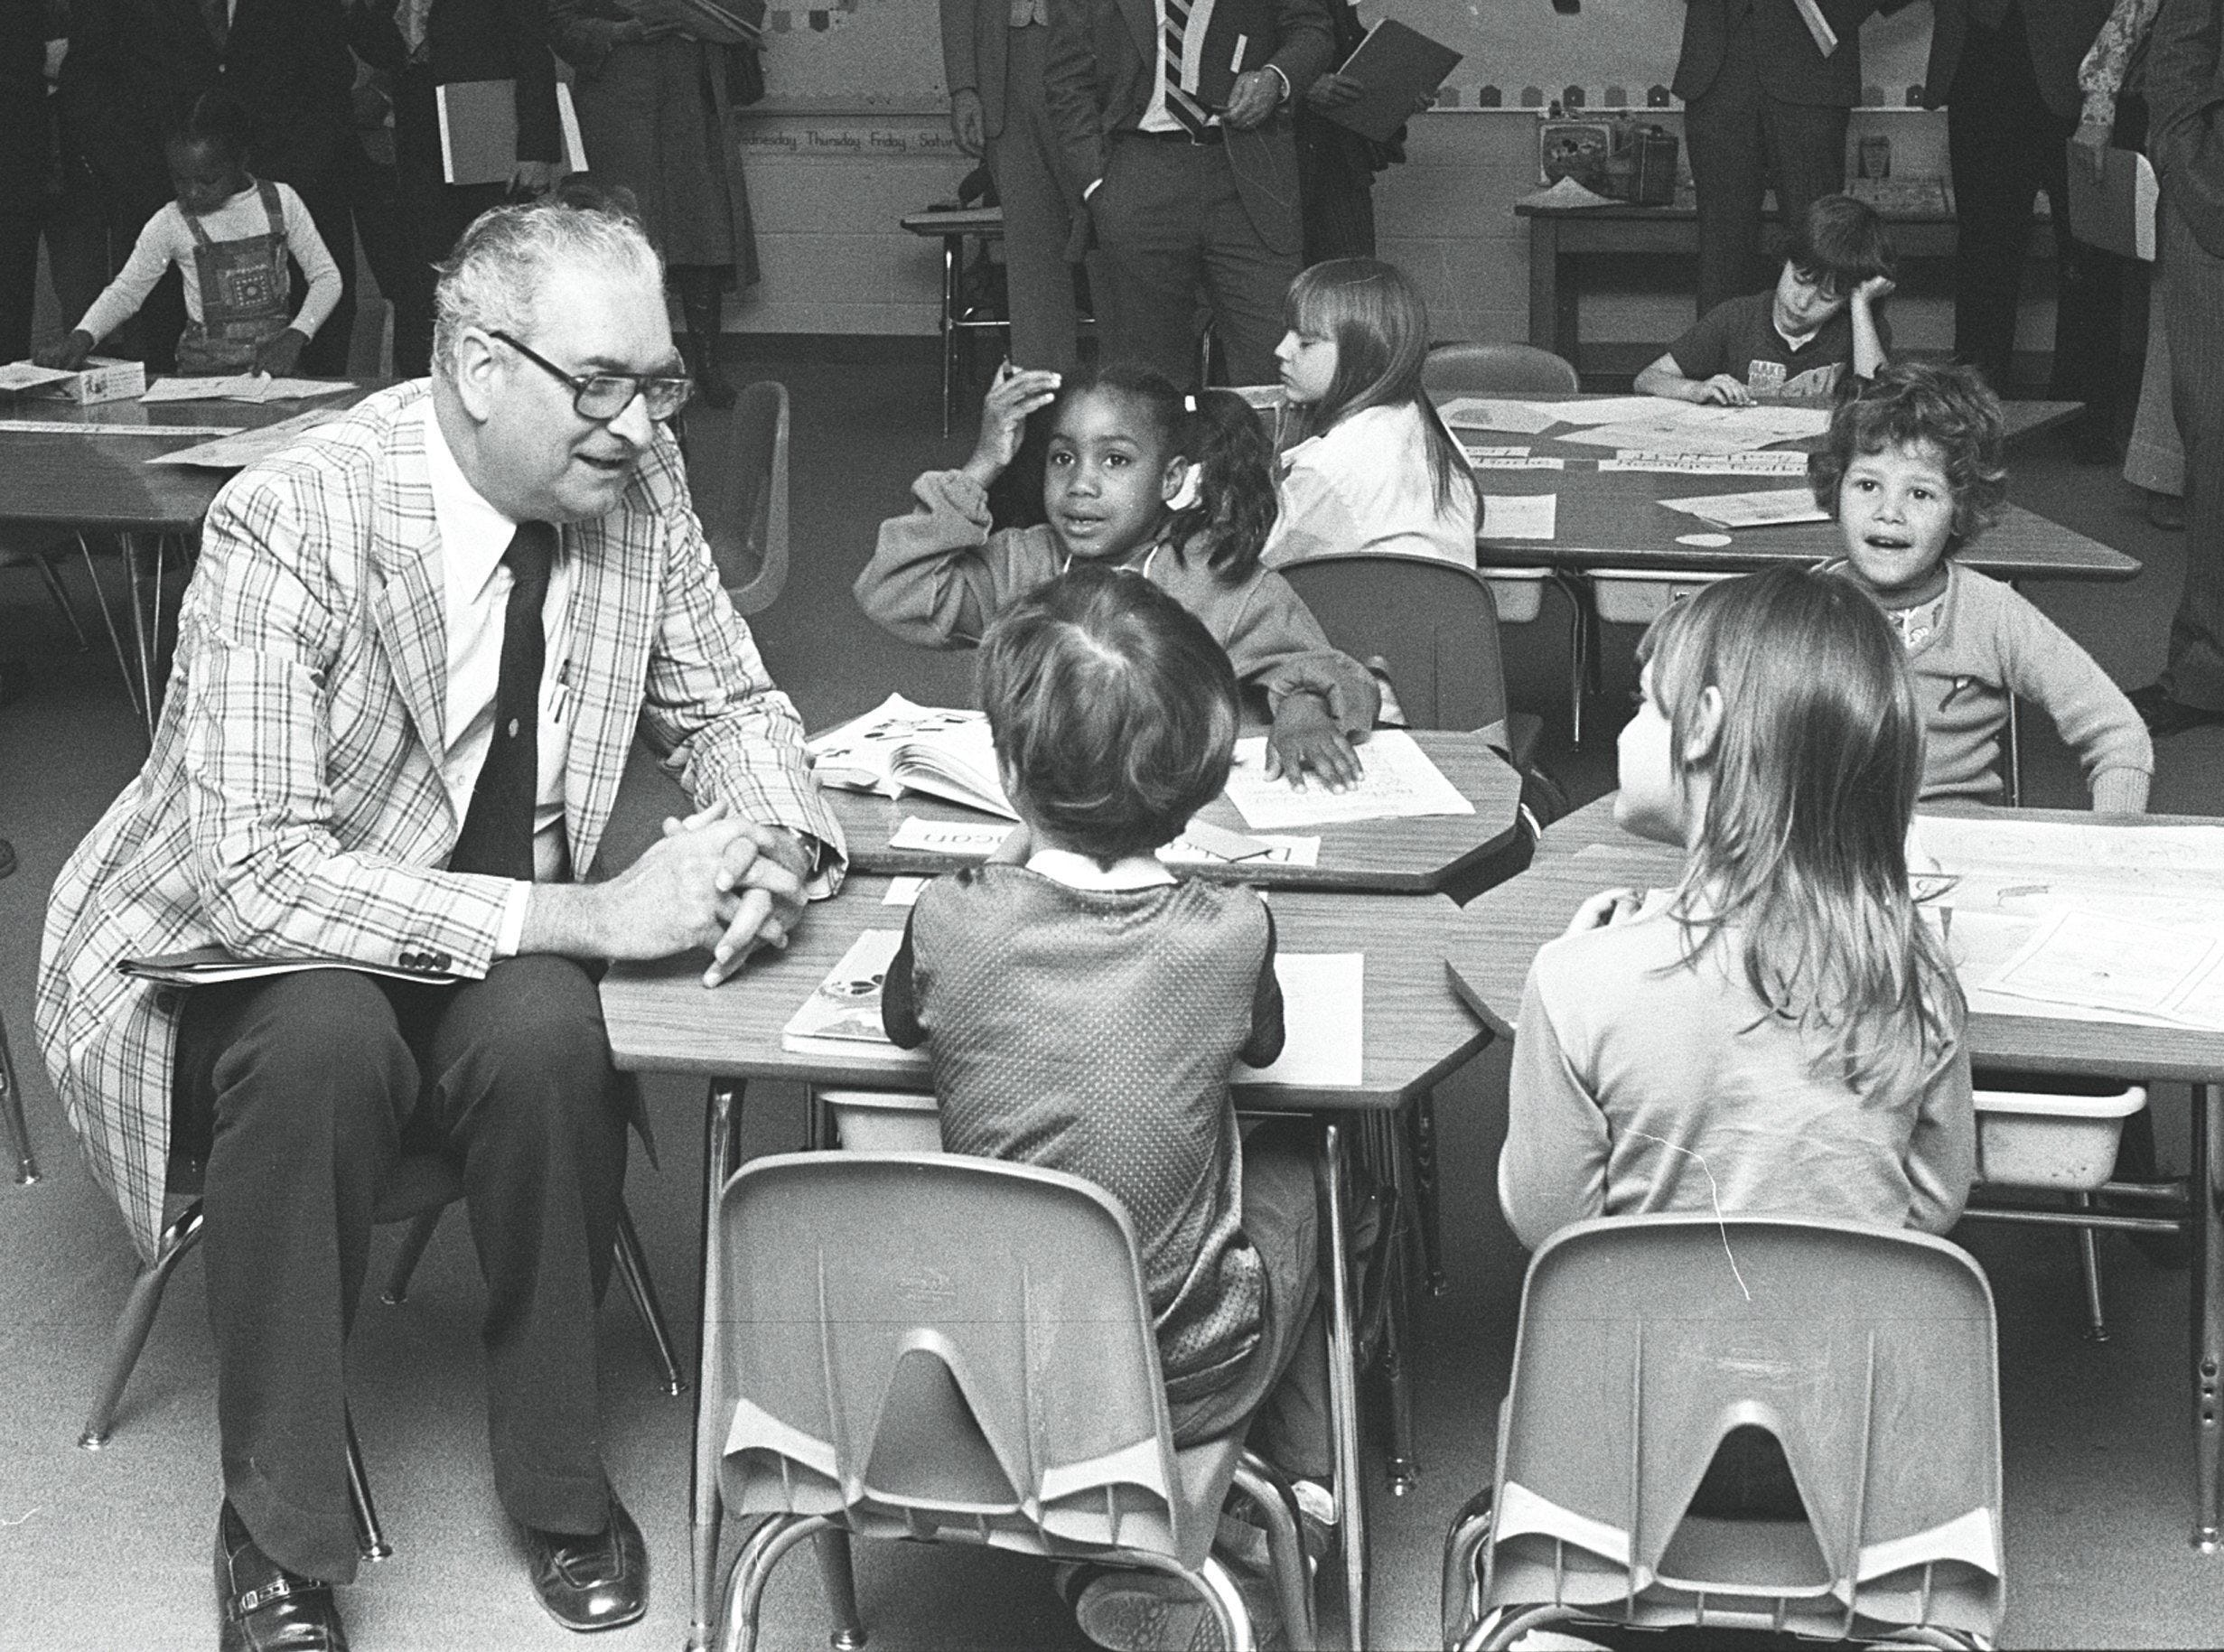 Memphis City Councilman Billy Hyman takes time on his tour of Sheffield Elementary school to talk with 6-year-old students Dion Donaldson and Kelly Caldwell (Backs to Camera) and DeSharon Duncan and Ricky Nicholson. Hyman was one of seven council members who toured several school offices and classrooms on 29 Mar 1978 to bring themselves up to date on the operation of the city school system.